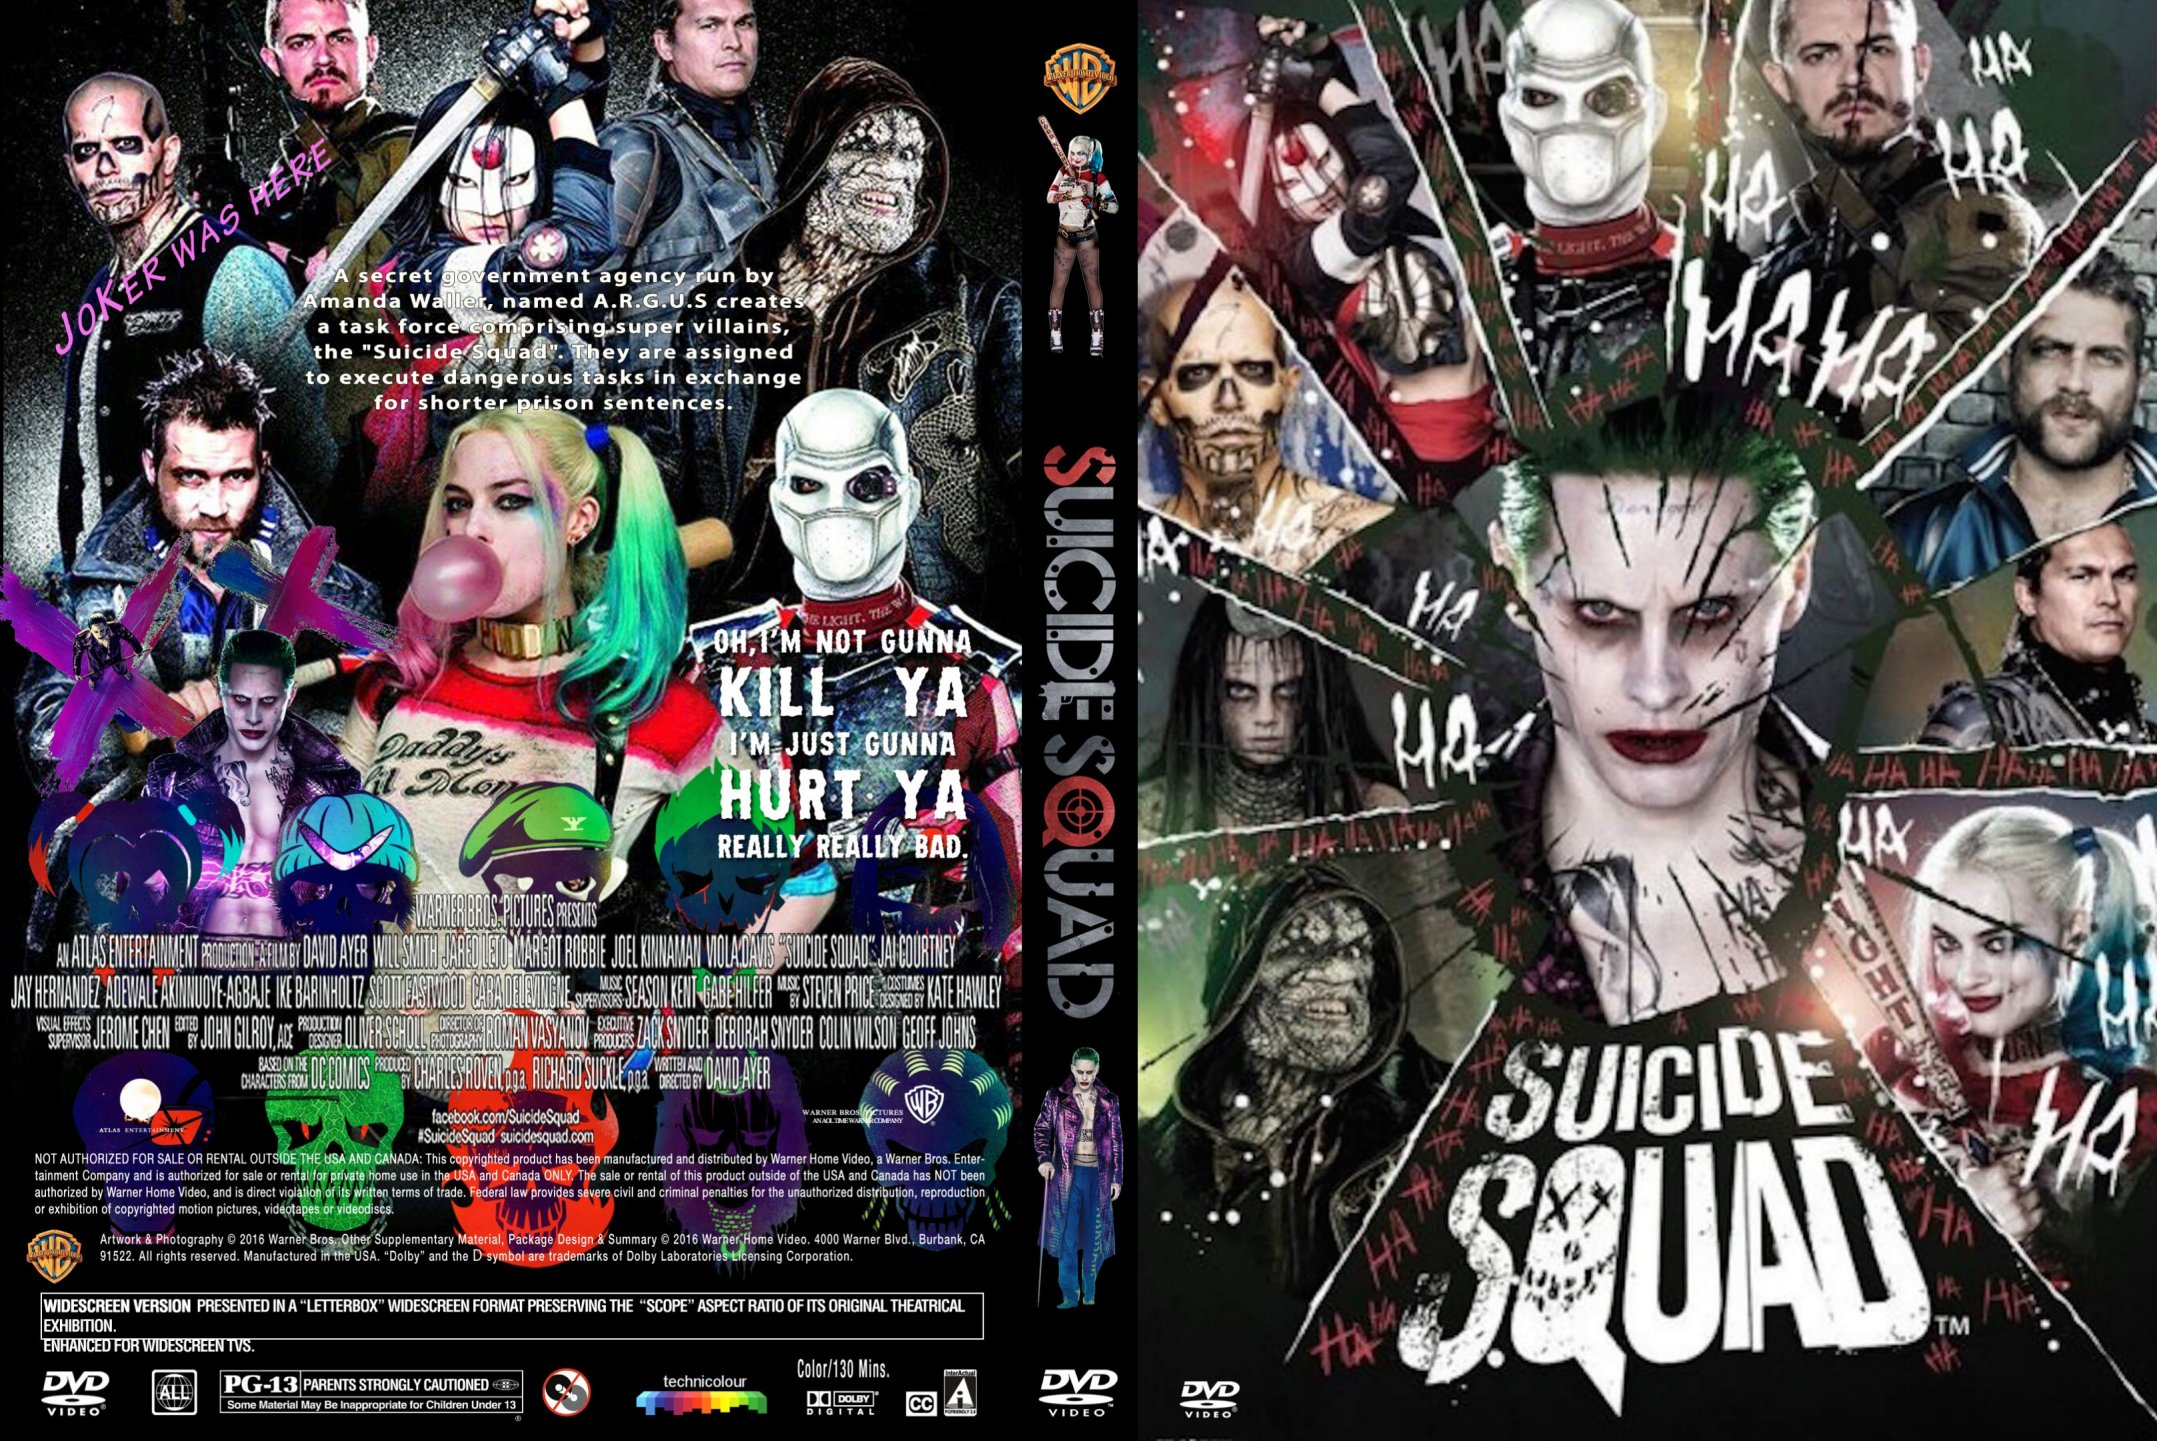 Suicide Squad 2016 DVD Cover